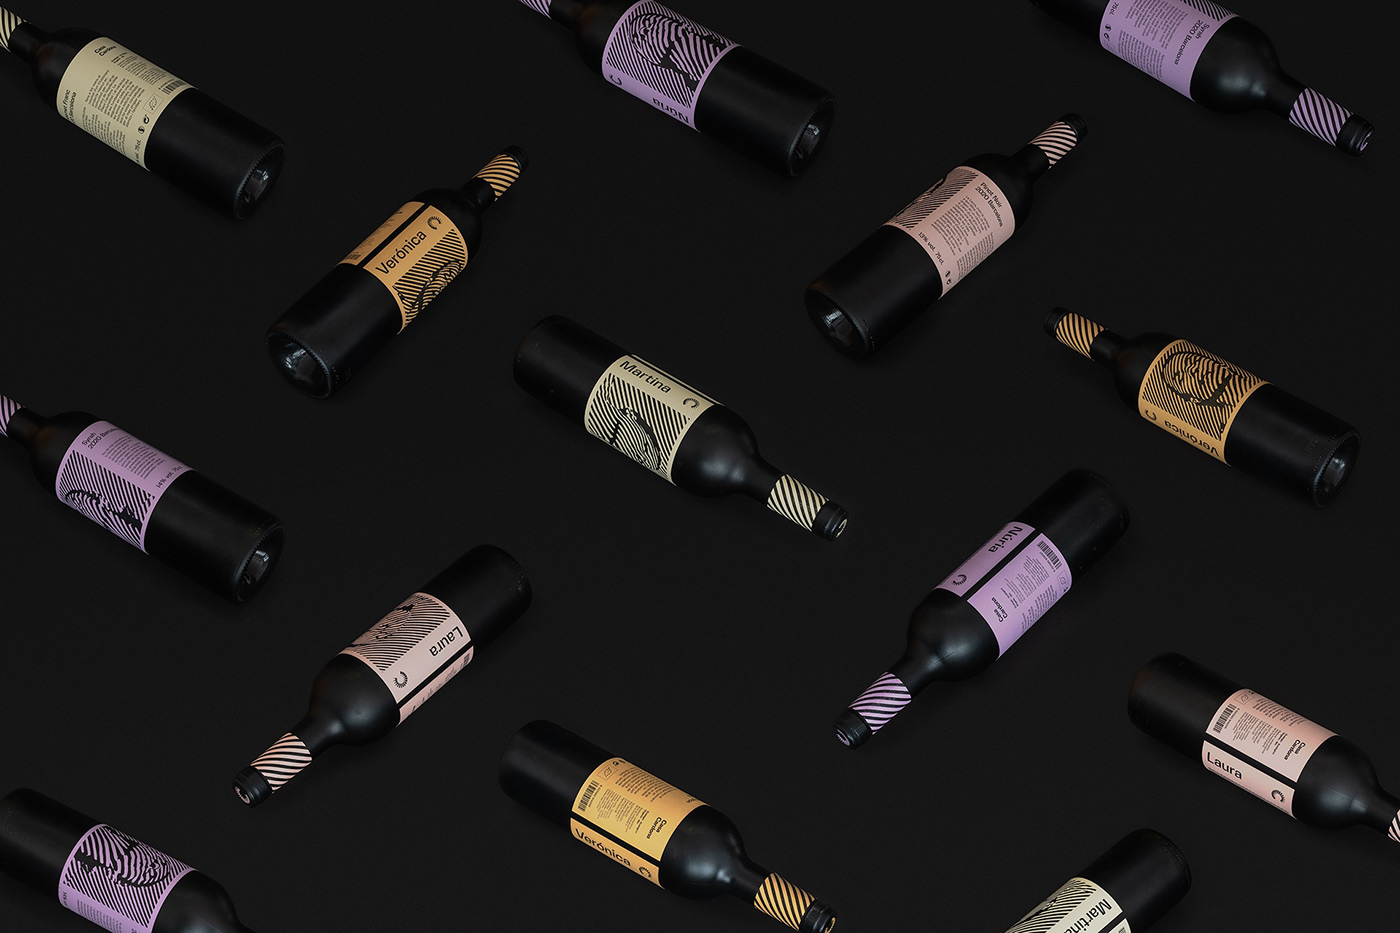 Casa Cardona wines. Group shot of the bottles in isometric view creating a seamless image